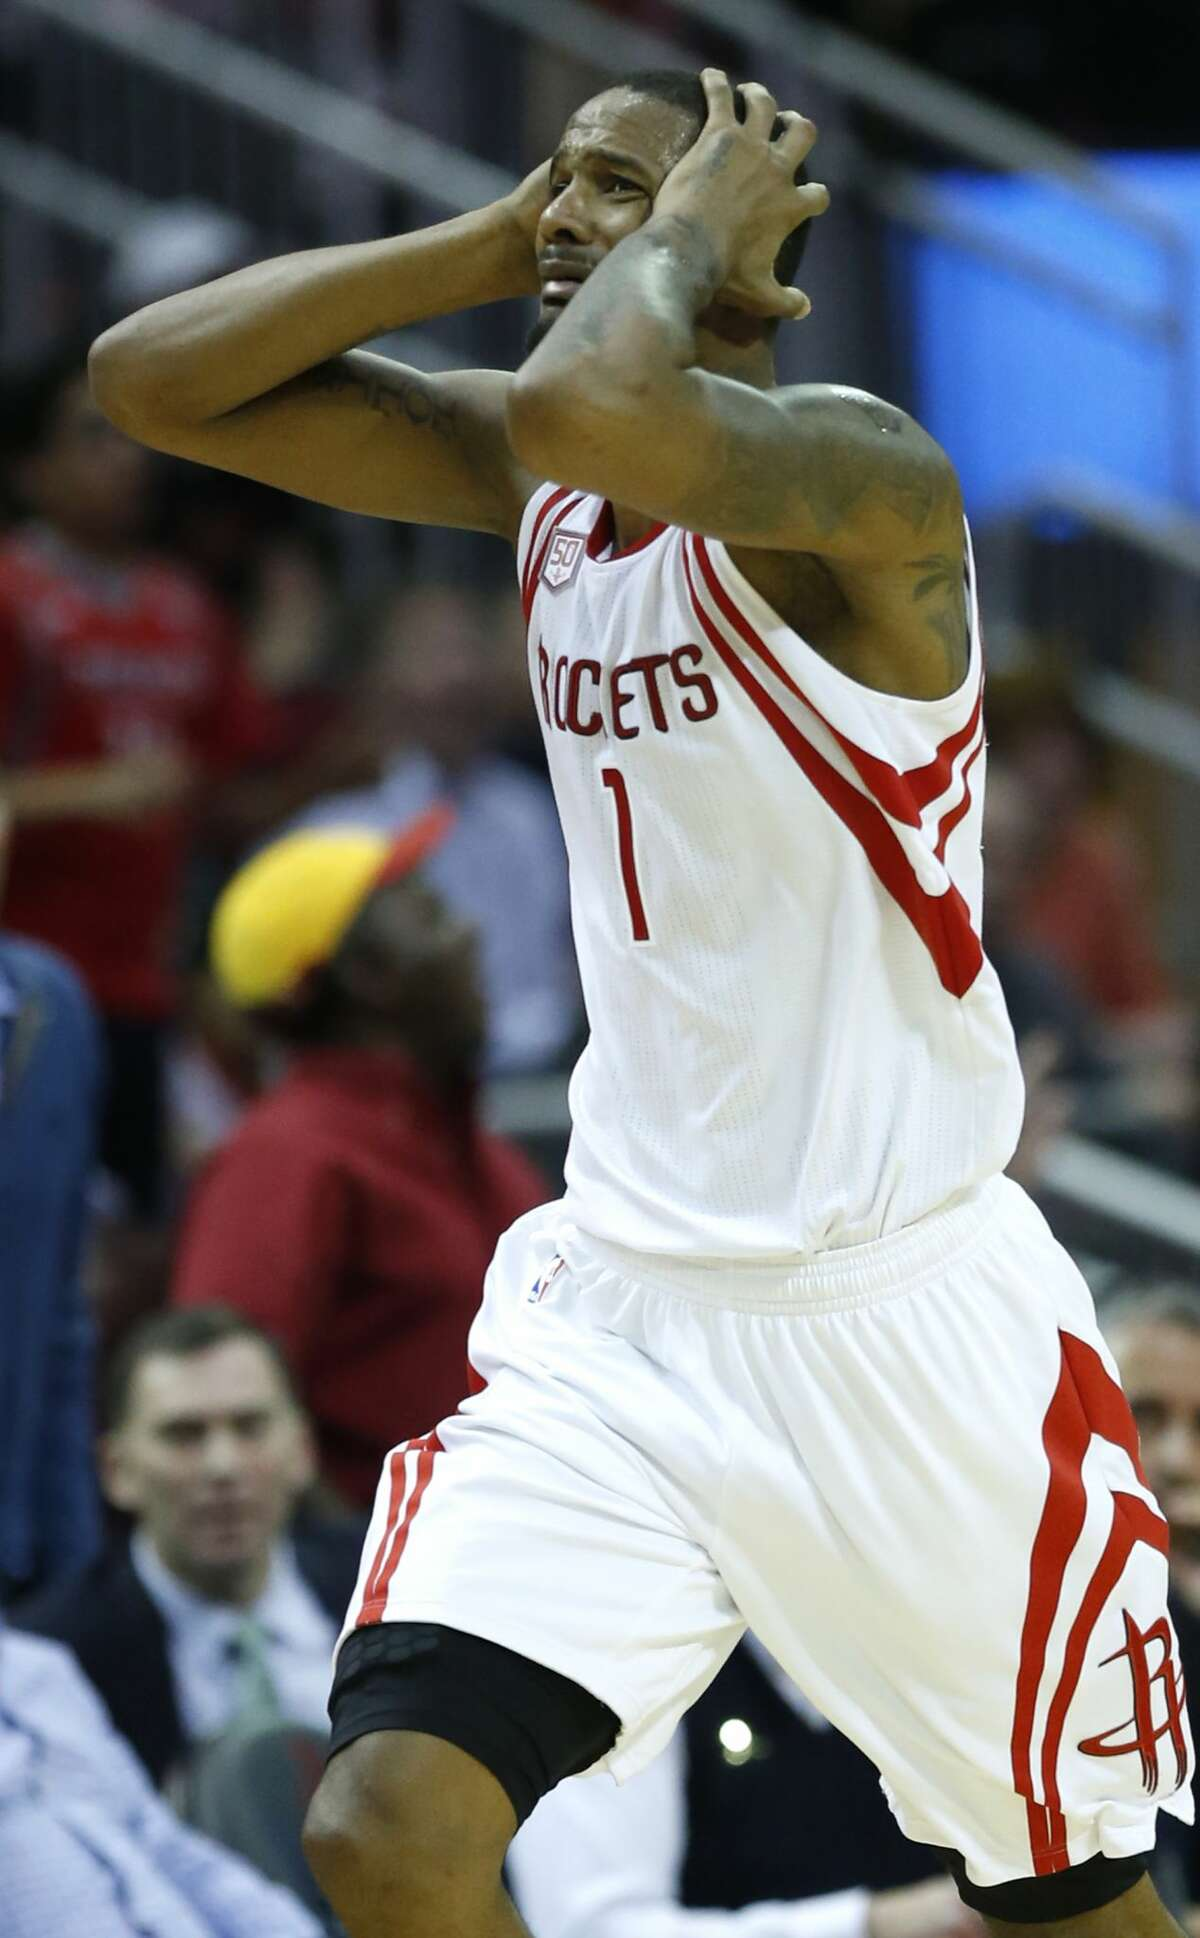 Houston Rockets forward Trevor Ariza (1) reacts after being called for a foul agaisnt the Utah Jazz during the fourth quarter of an NBA basketball game at Toyota Center on Wednesday, March 8, 2017, in Houston. ( Brett Coomer / Houston Chronicle )